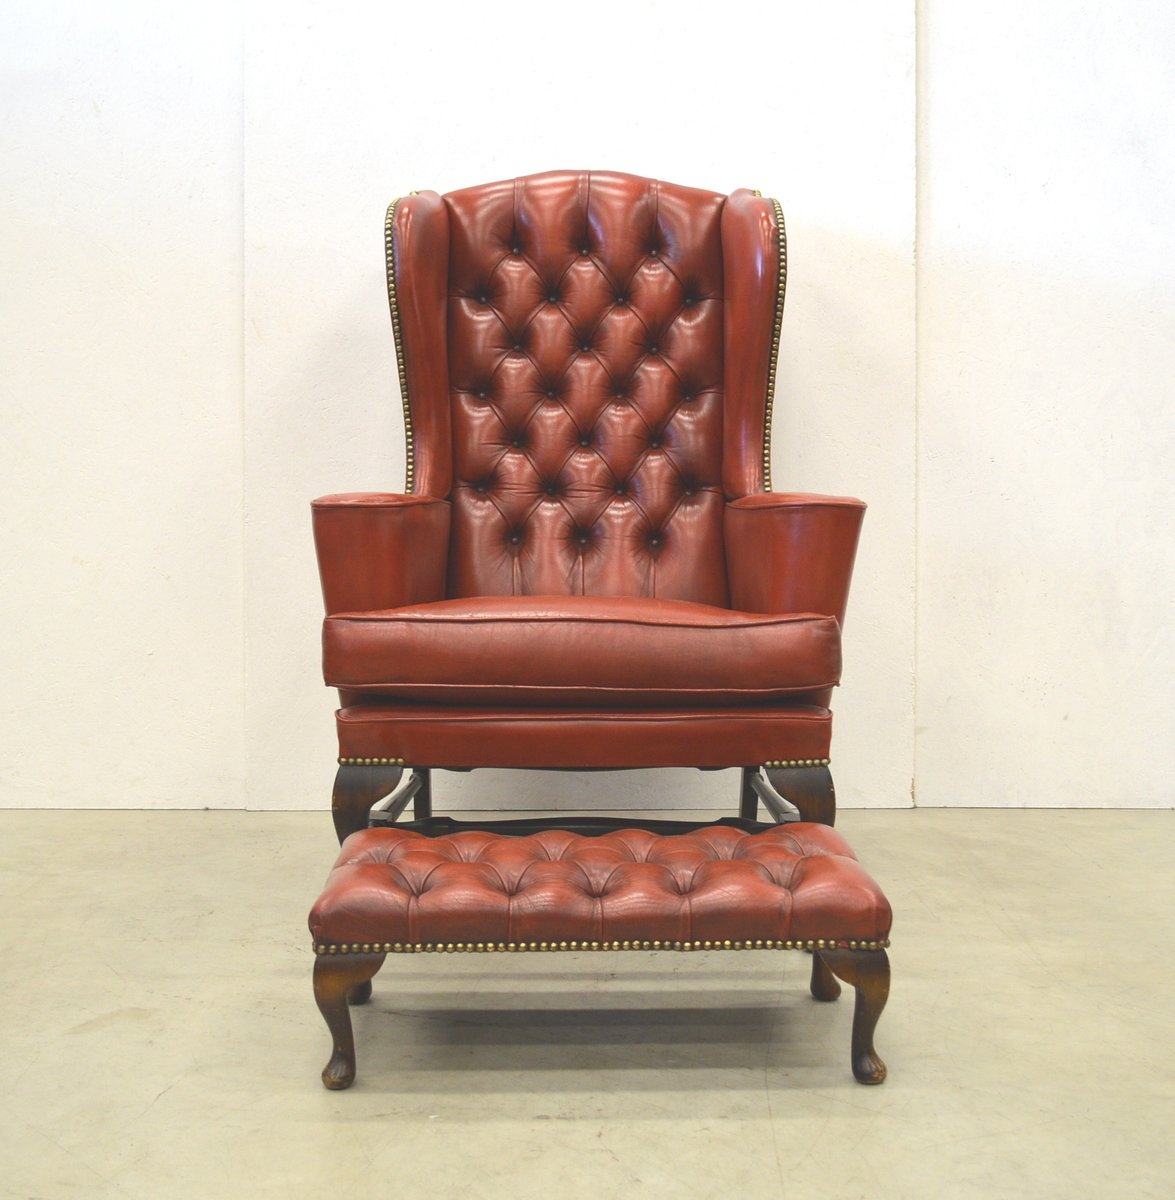 Wing back chair vintage - Vintage English Chesterfield Wingback Chair Ottoman 1960s